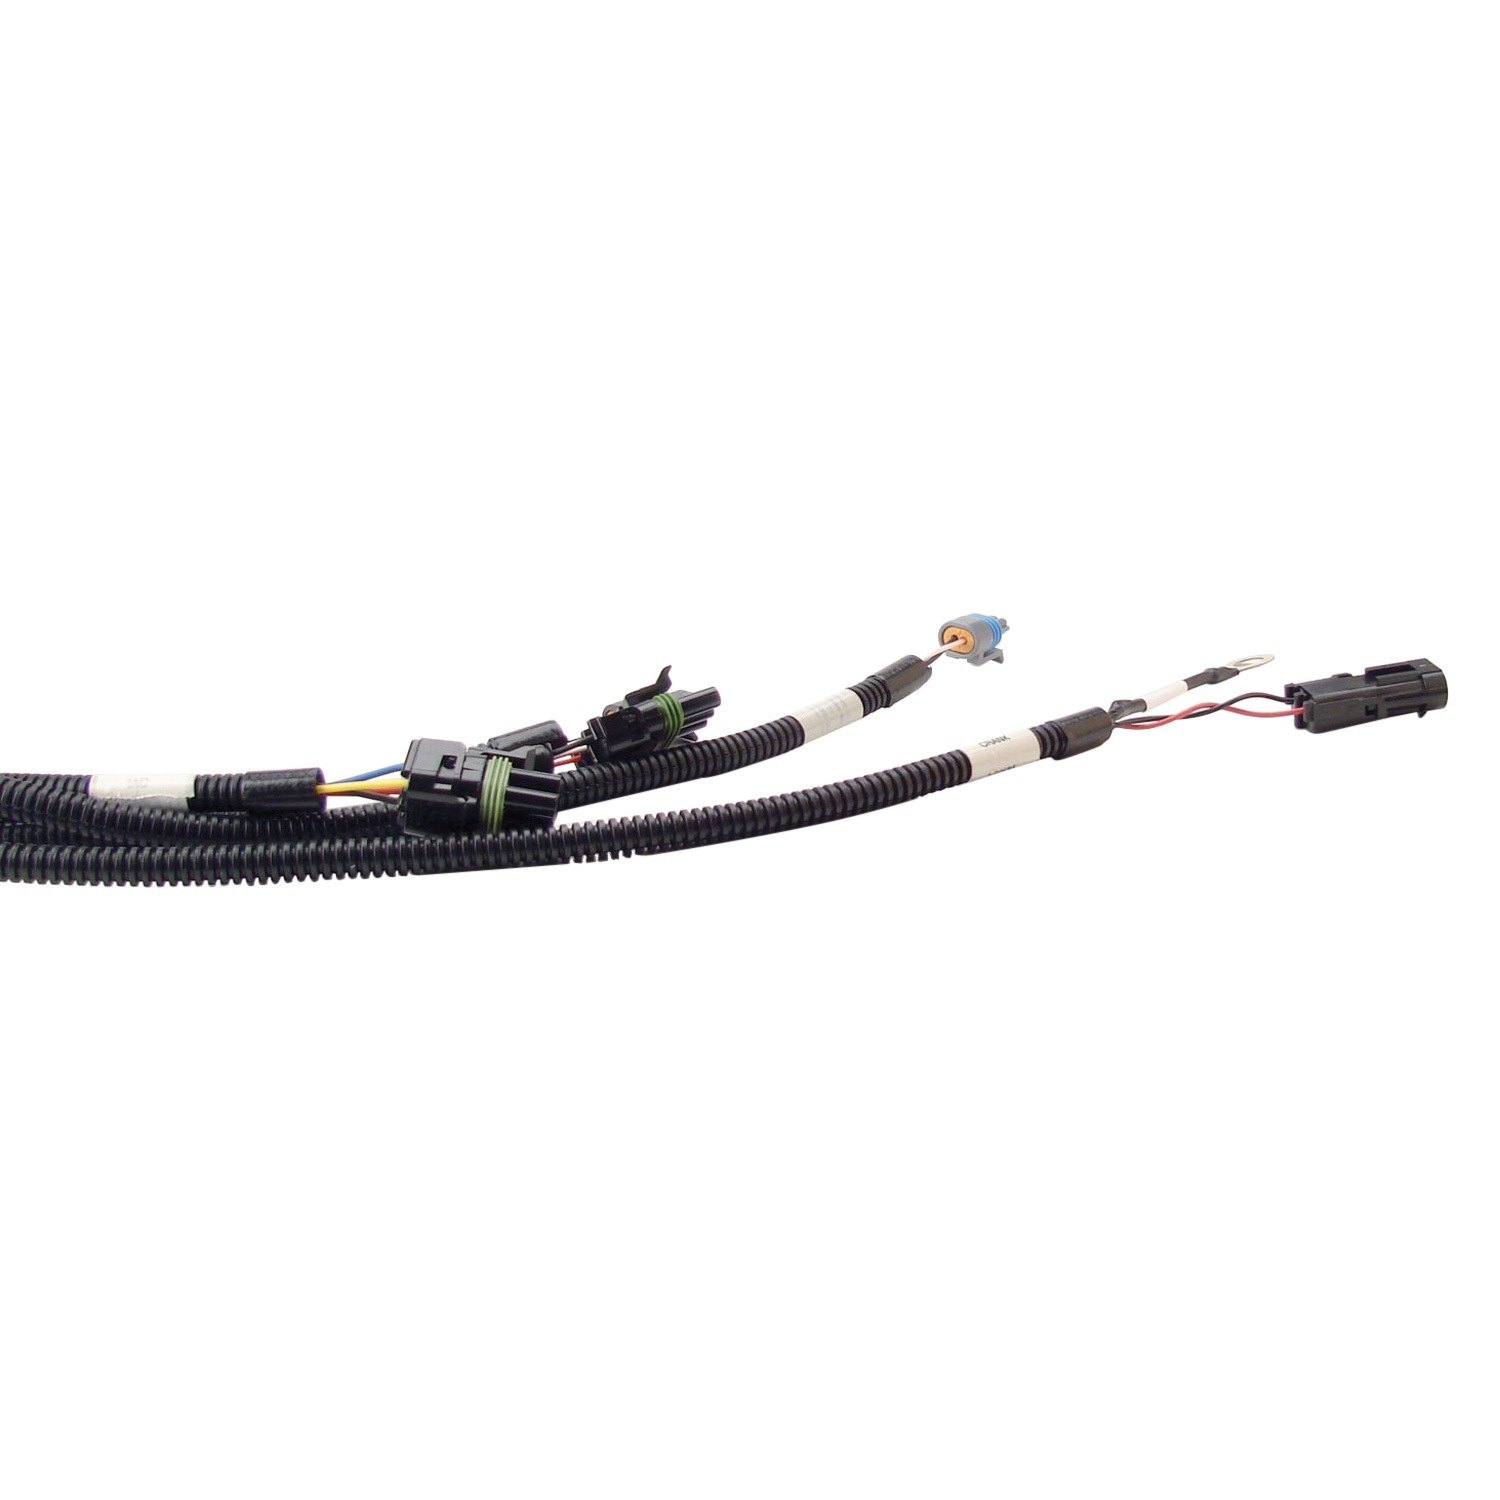 For Chevy Camaro Fast Wiring Harness